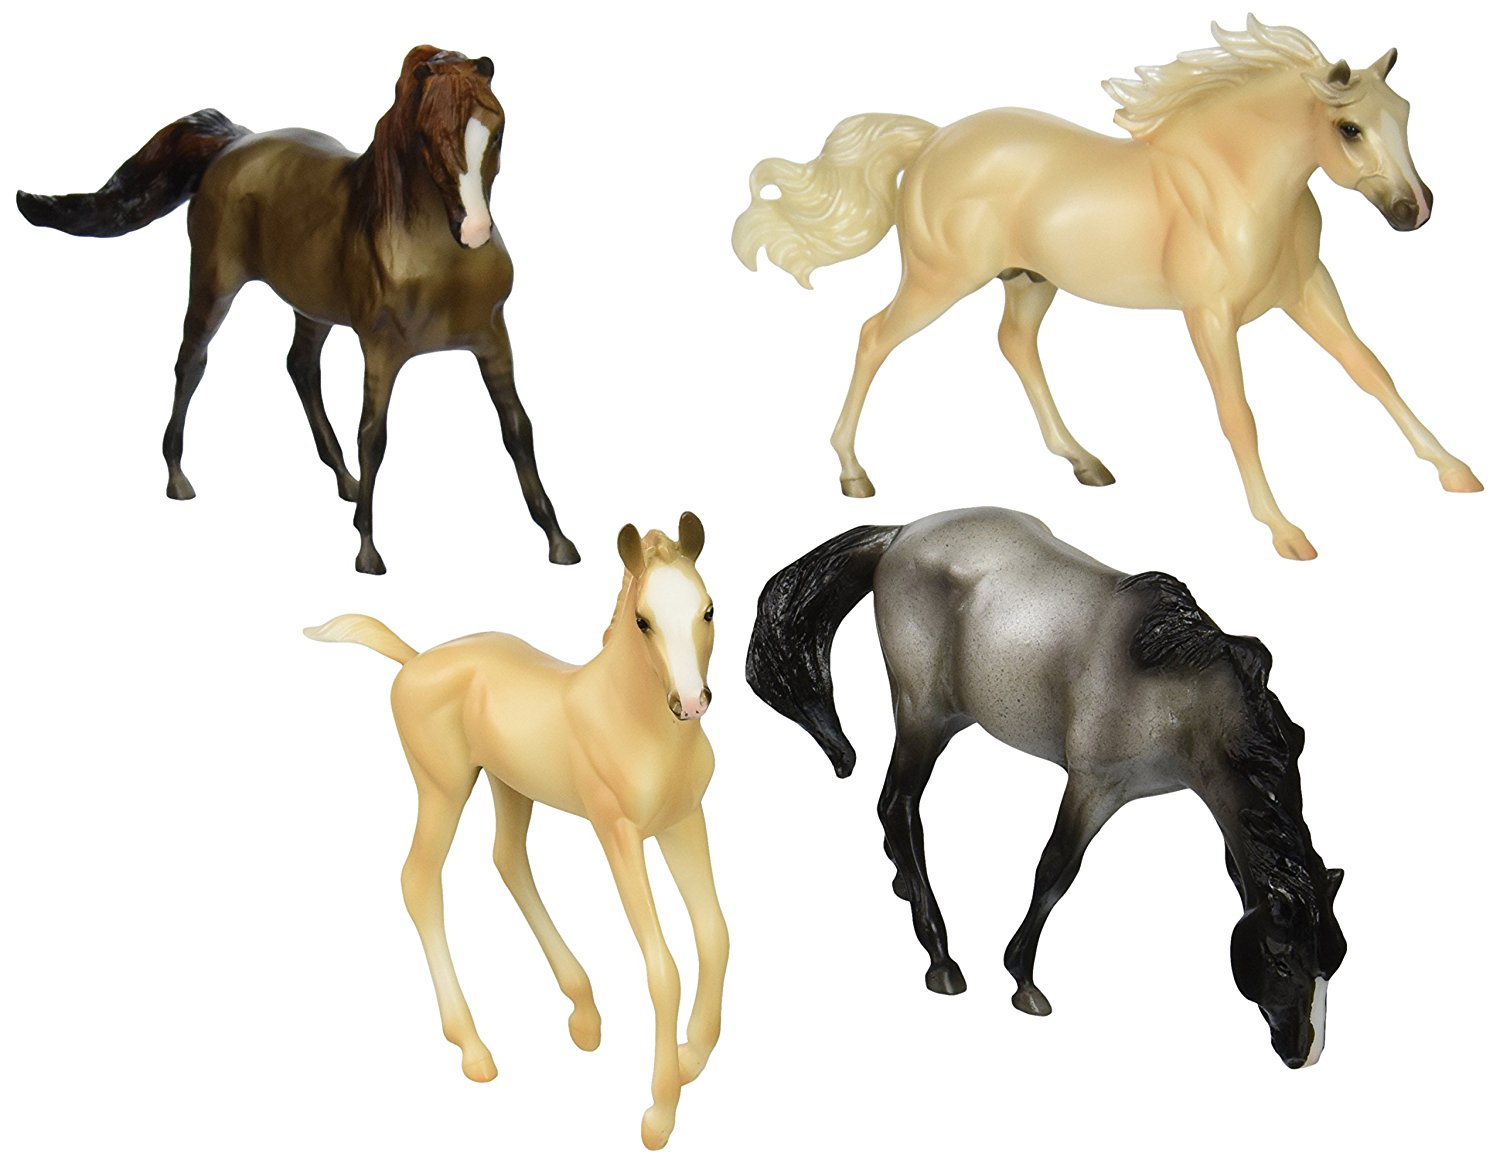 Breyer 1:12 Classics Model Horse Cloud's Encore 4-Piece Gift Set by Breyer Animal Creations